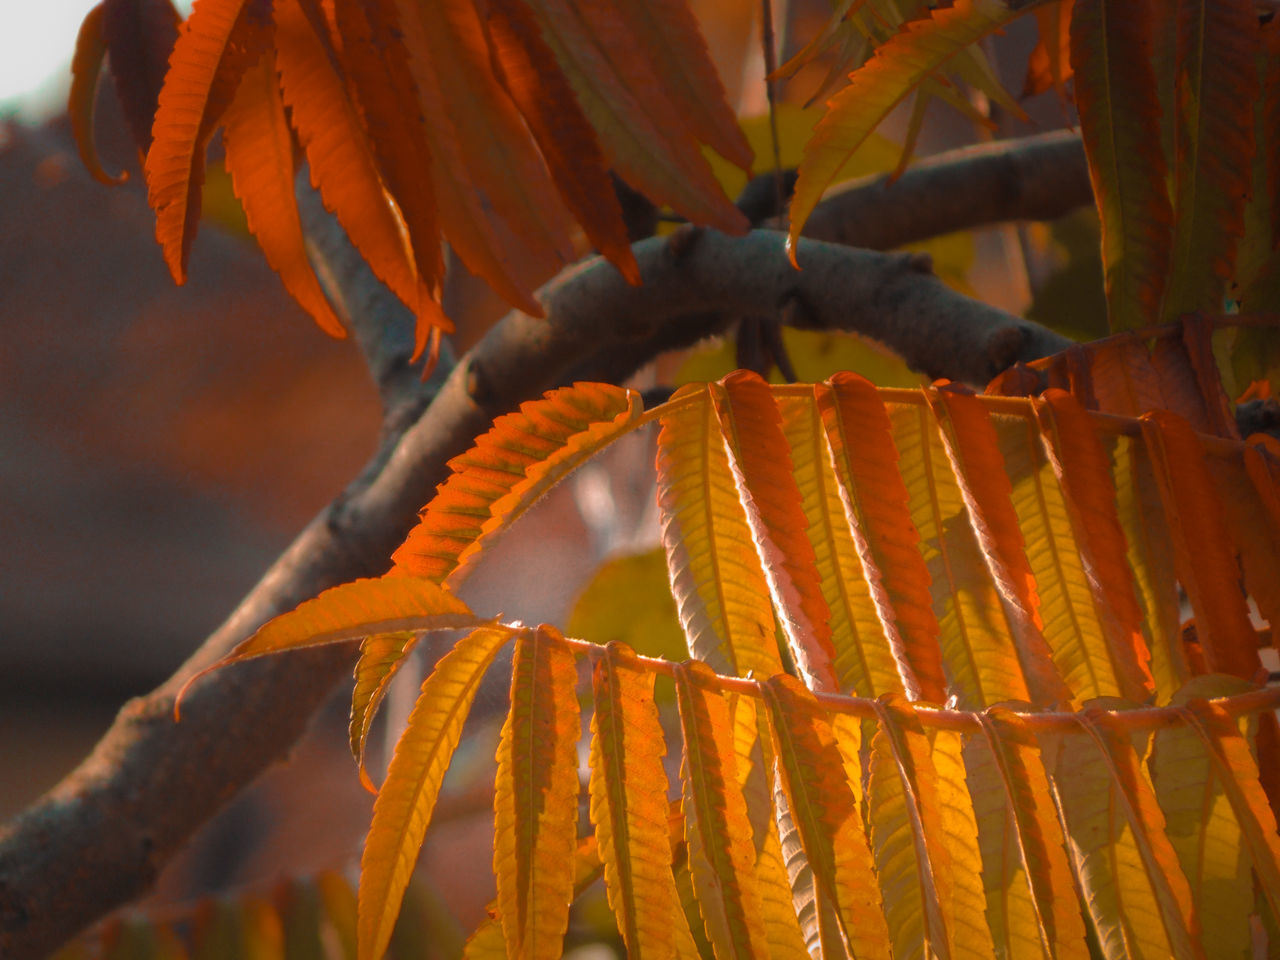 orange color, growth, no people, nature, leaf, outdoors, day, close-up, plant, freshness, beauty in nature, food